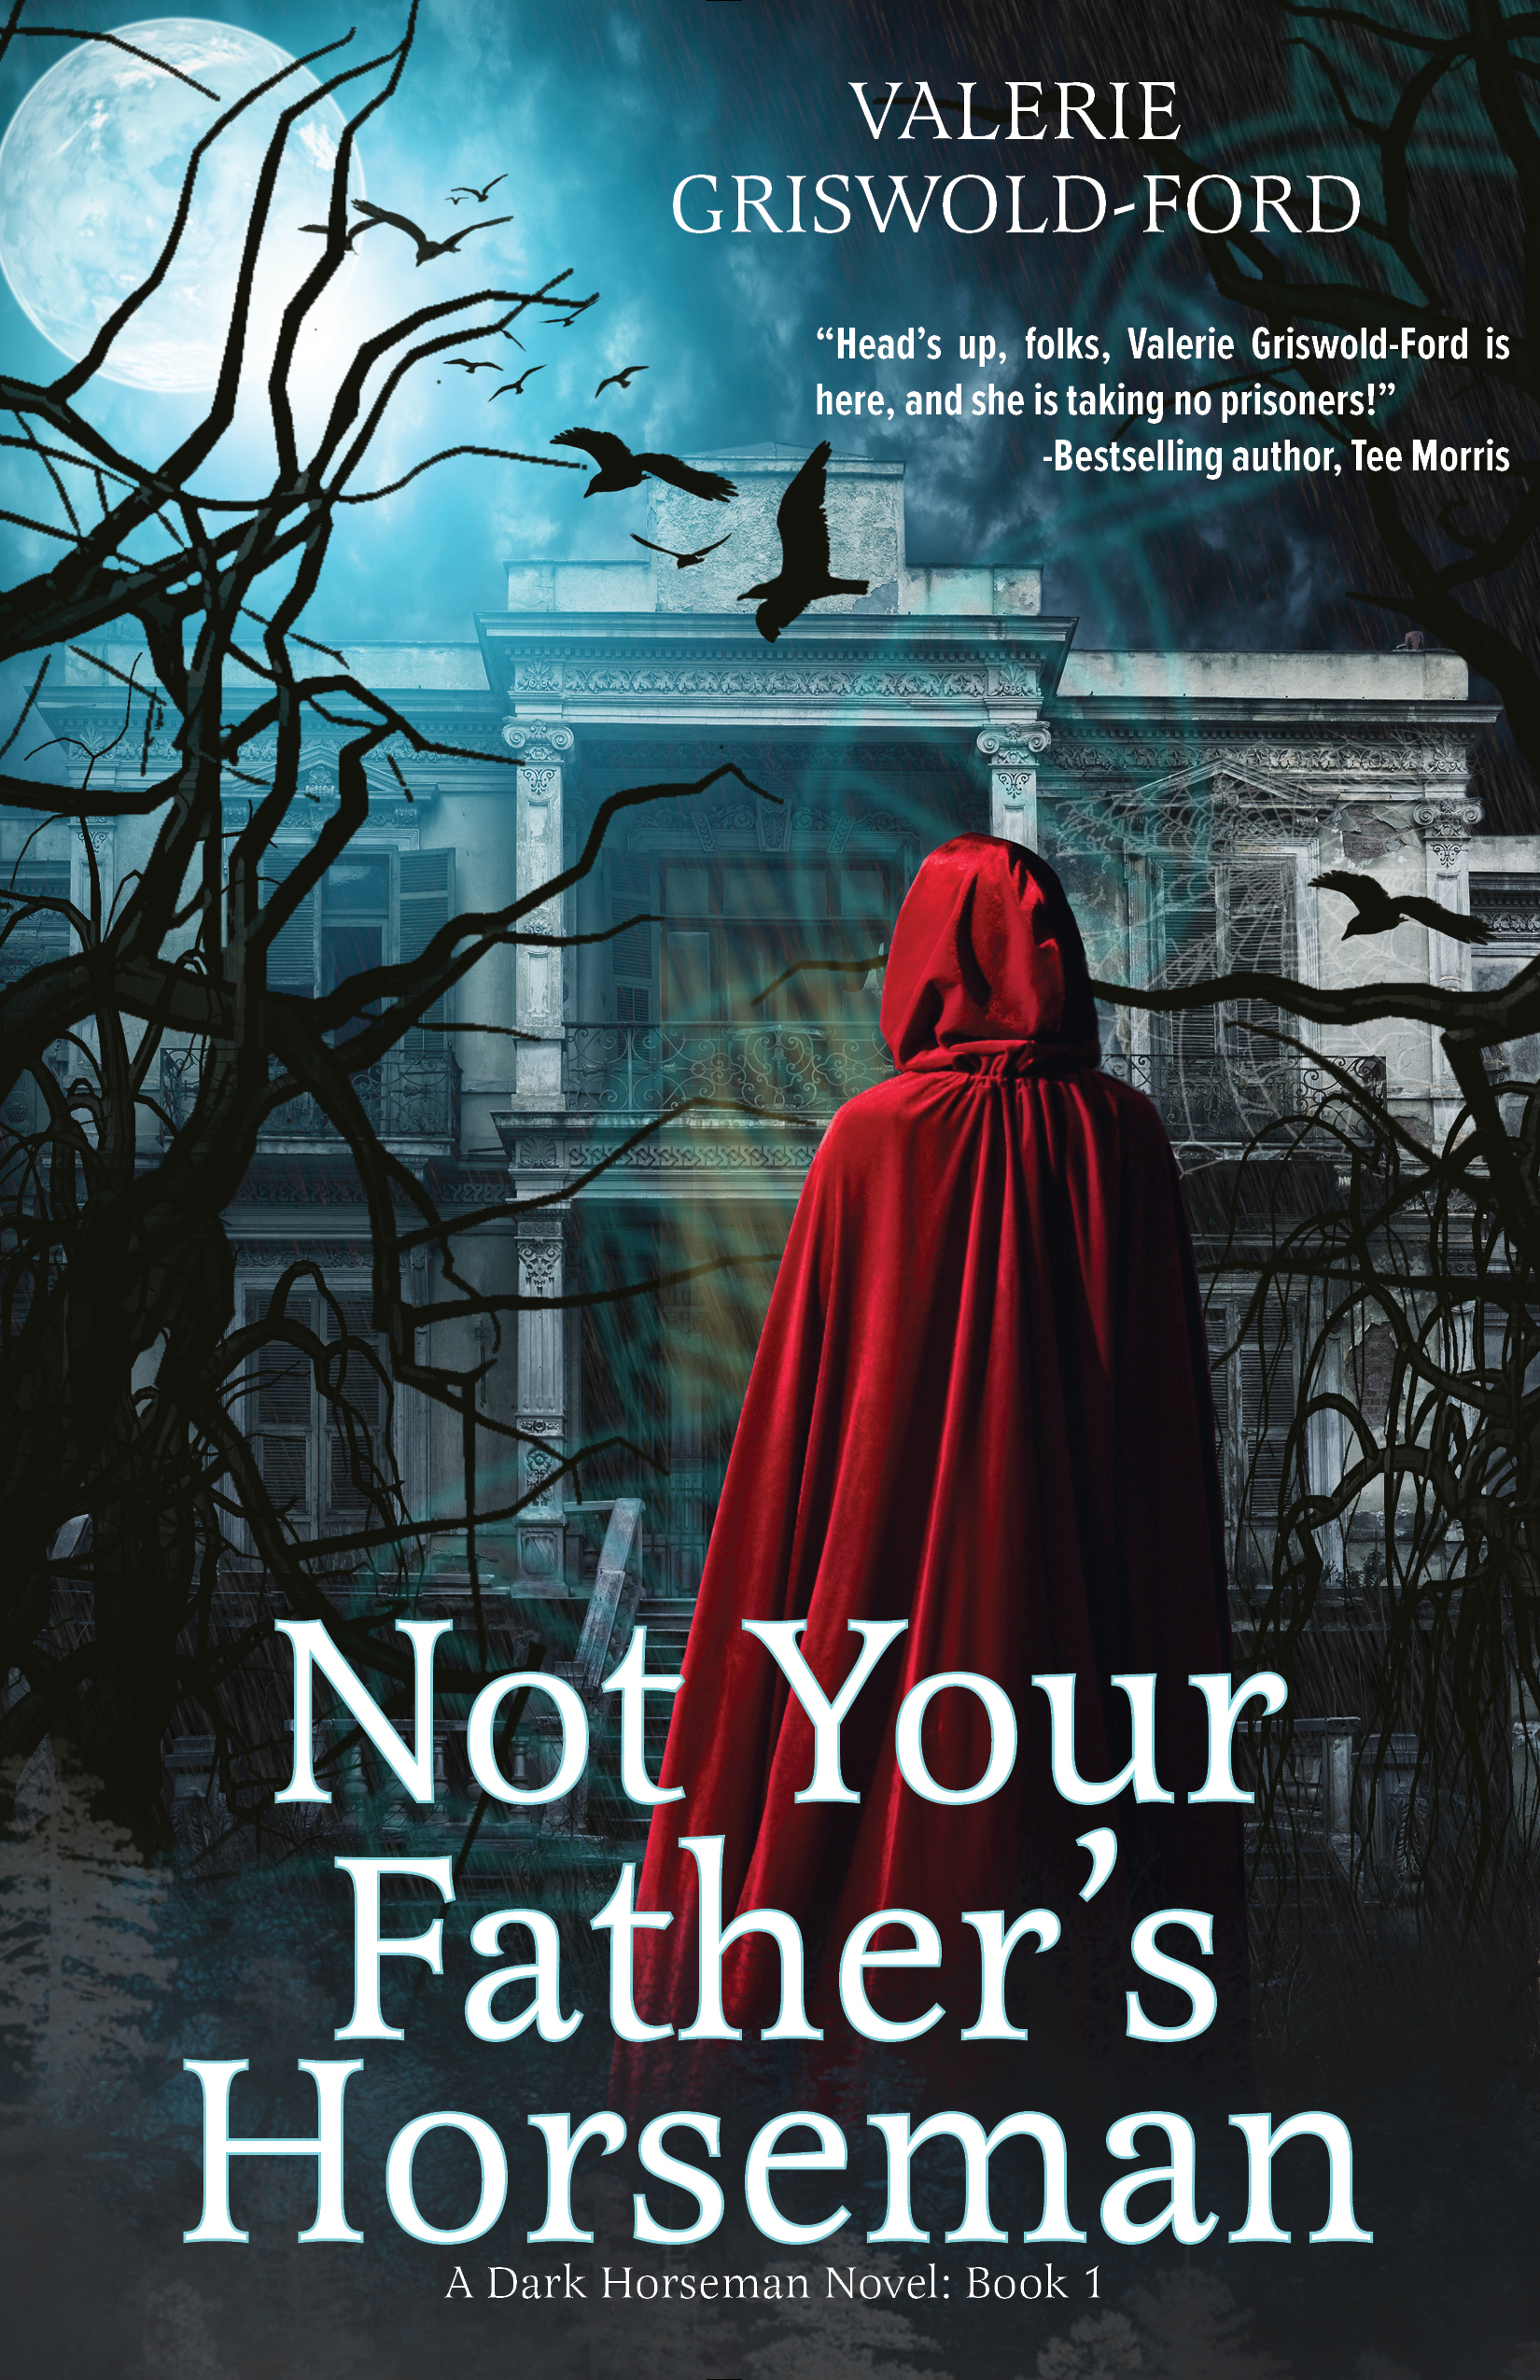 Not Your Father's Horseman by Valerie Griswold-Ford 00043